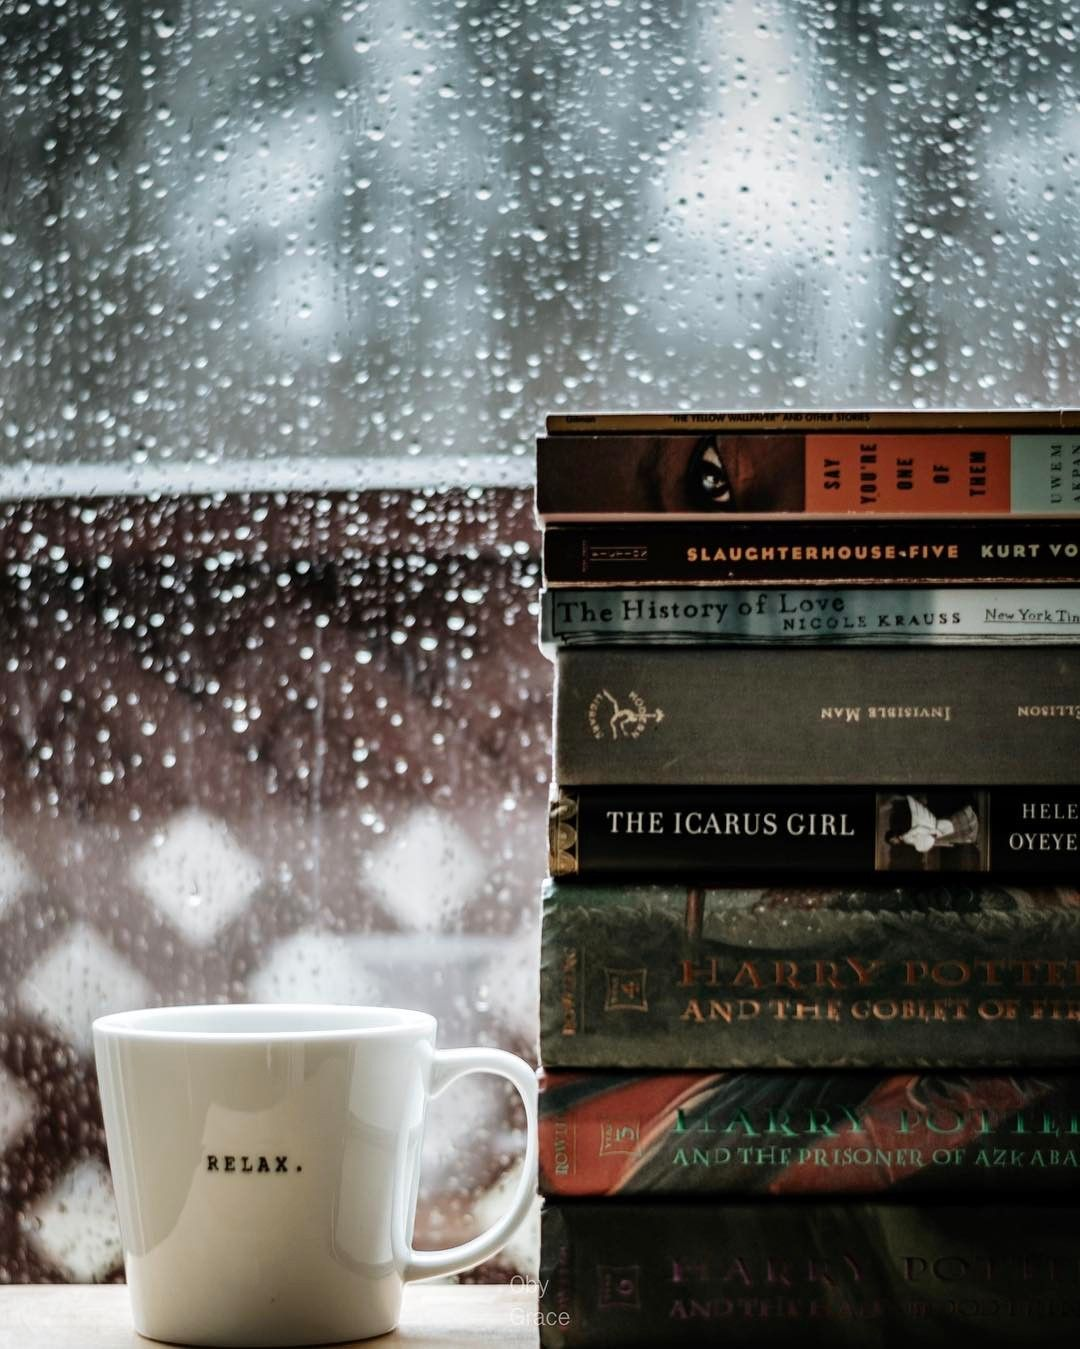 Coffee and books and maybe a little rain. Pitter patter